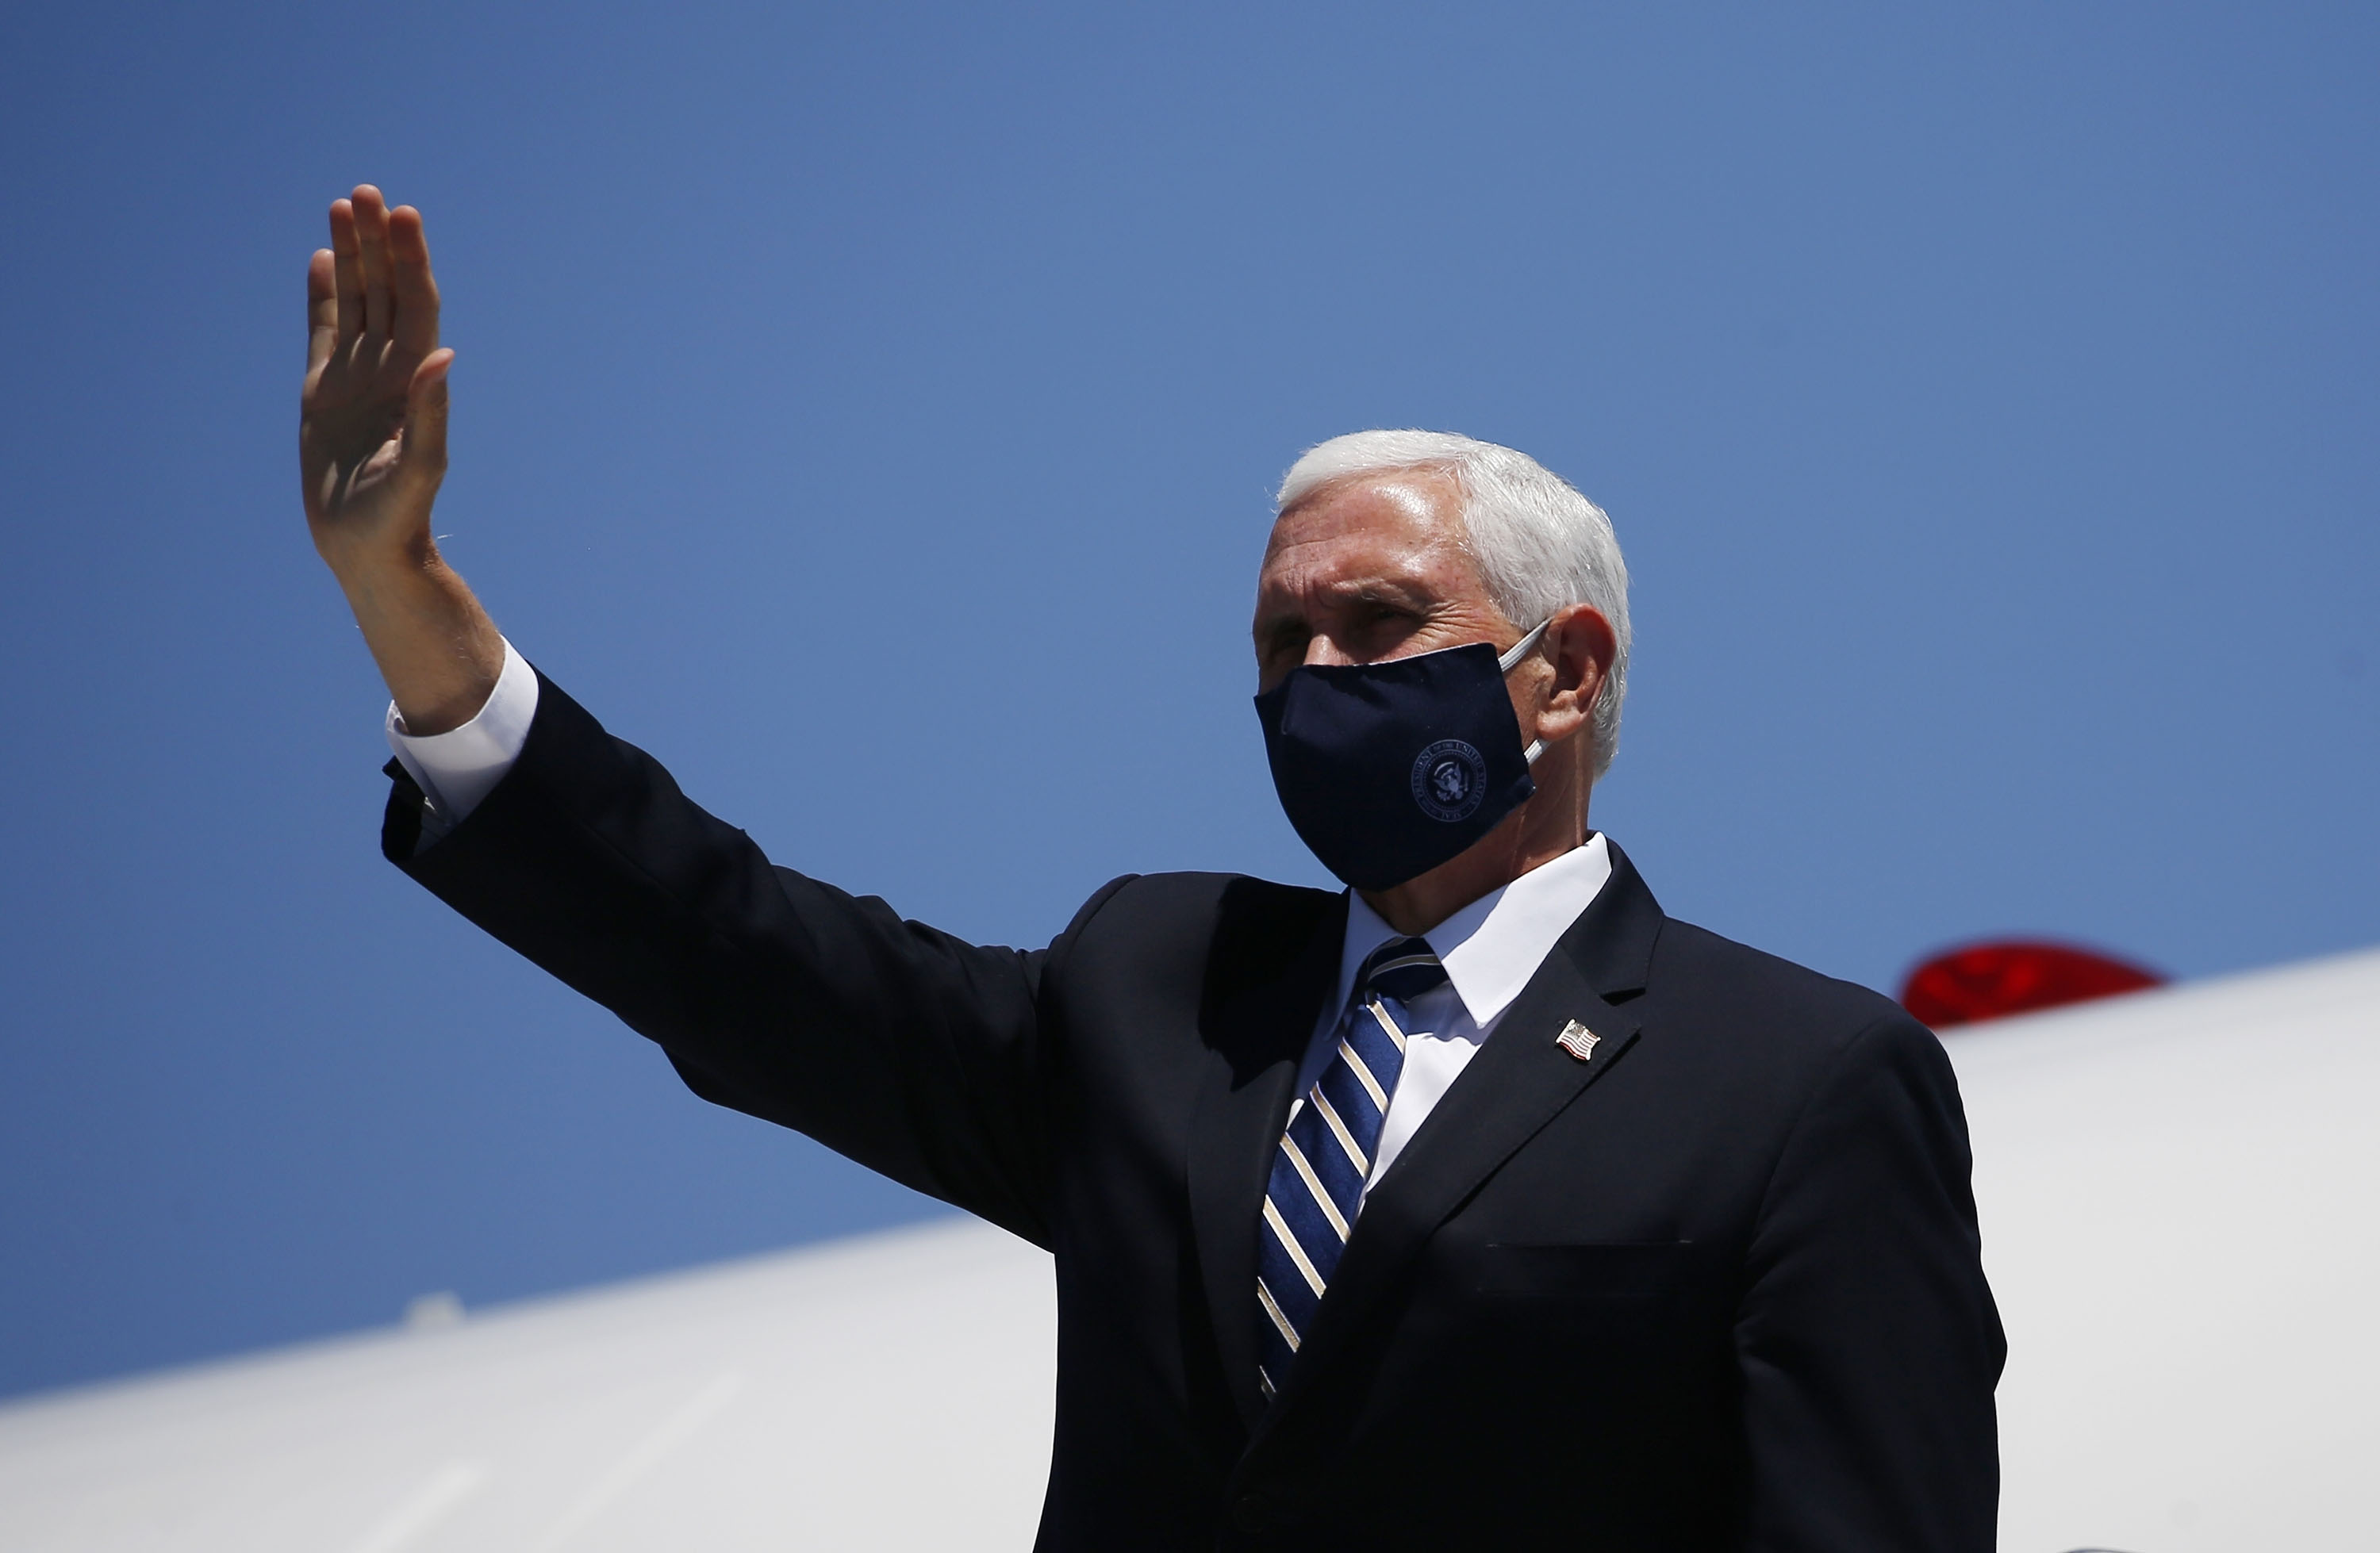 Vice President Mike Pence waves as he arrives in Phoenix to meet with Arizona Republican Gov. Doug Ducey to discuss the surge in coronavirus cases on Wednesday, July 1.